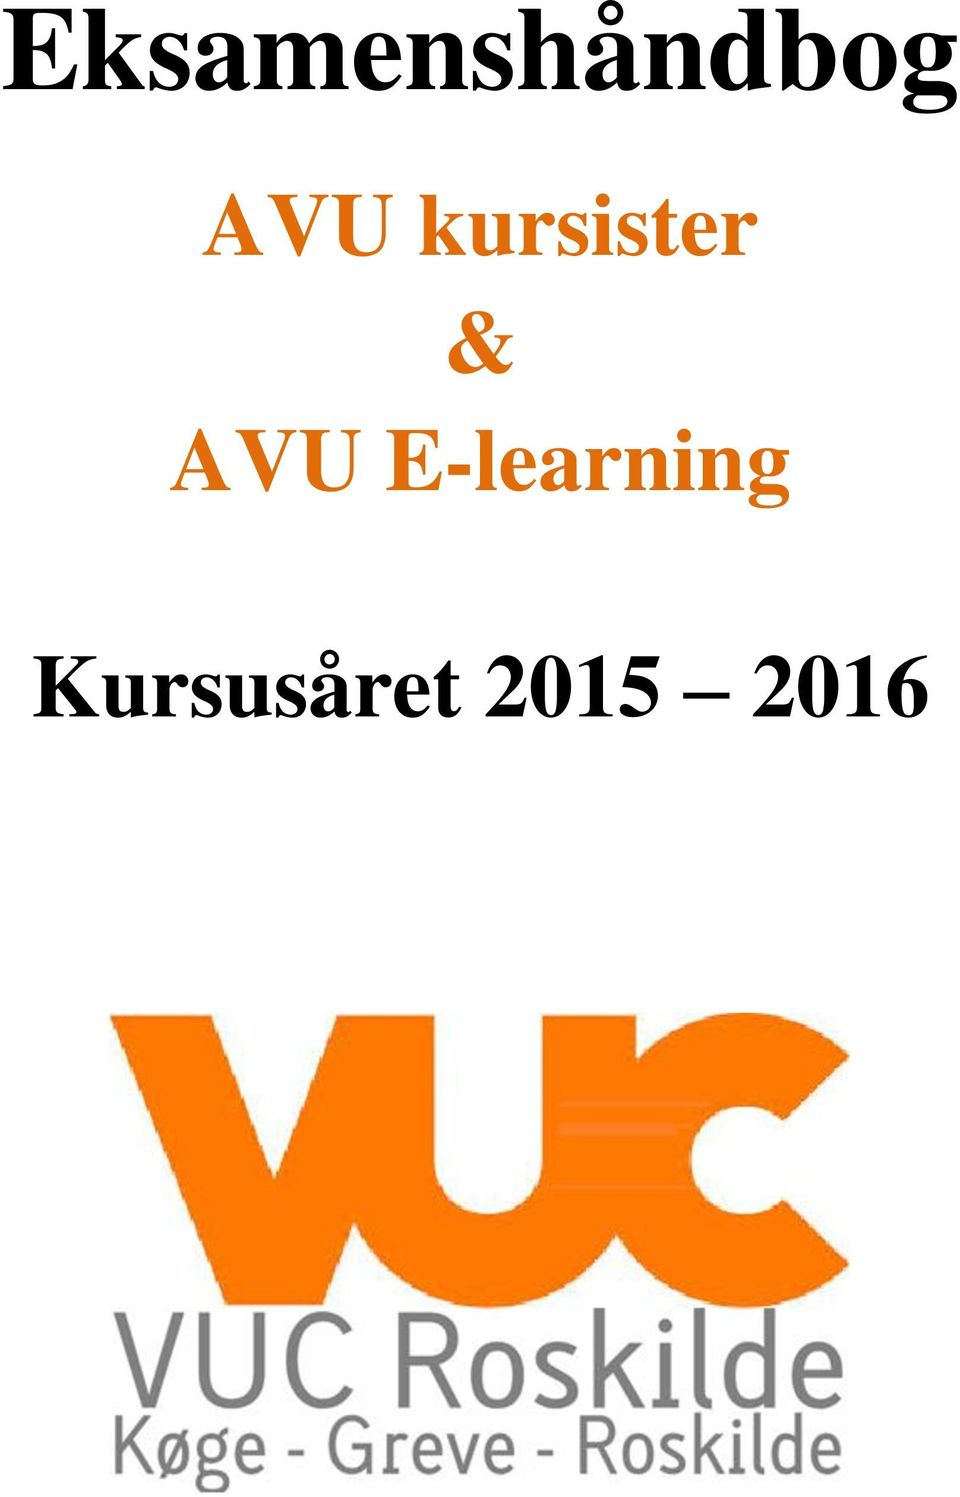 AVU E-learning